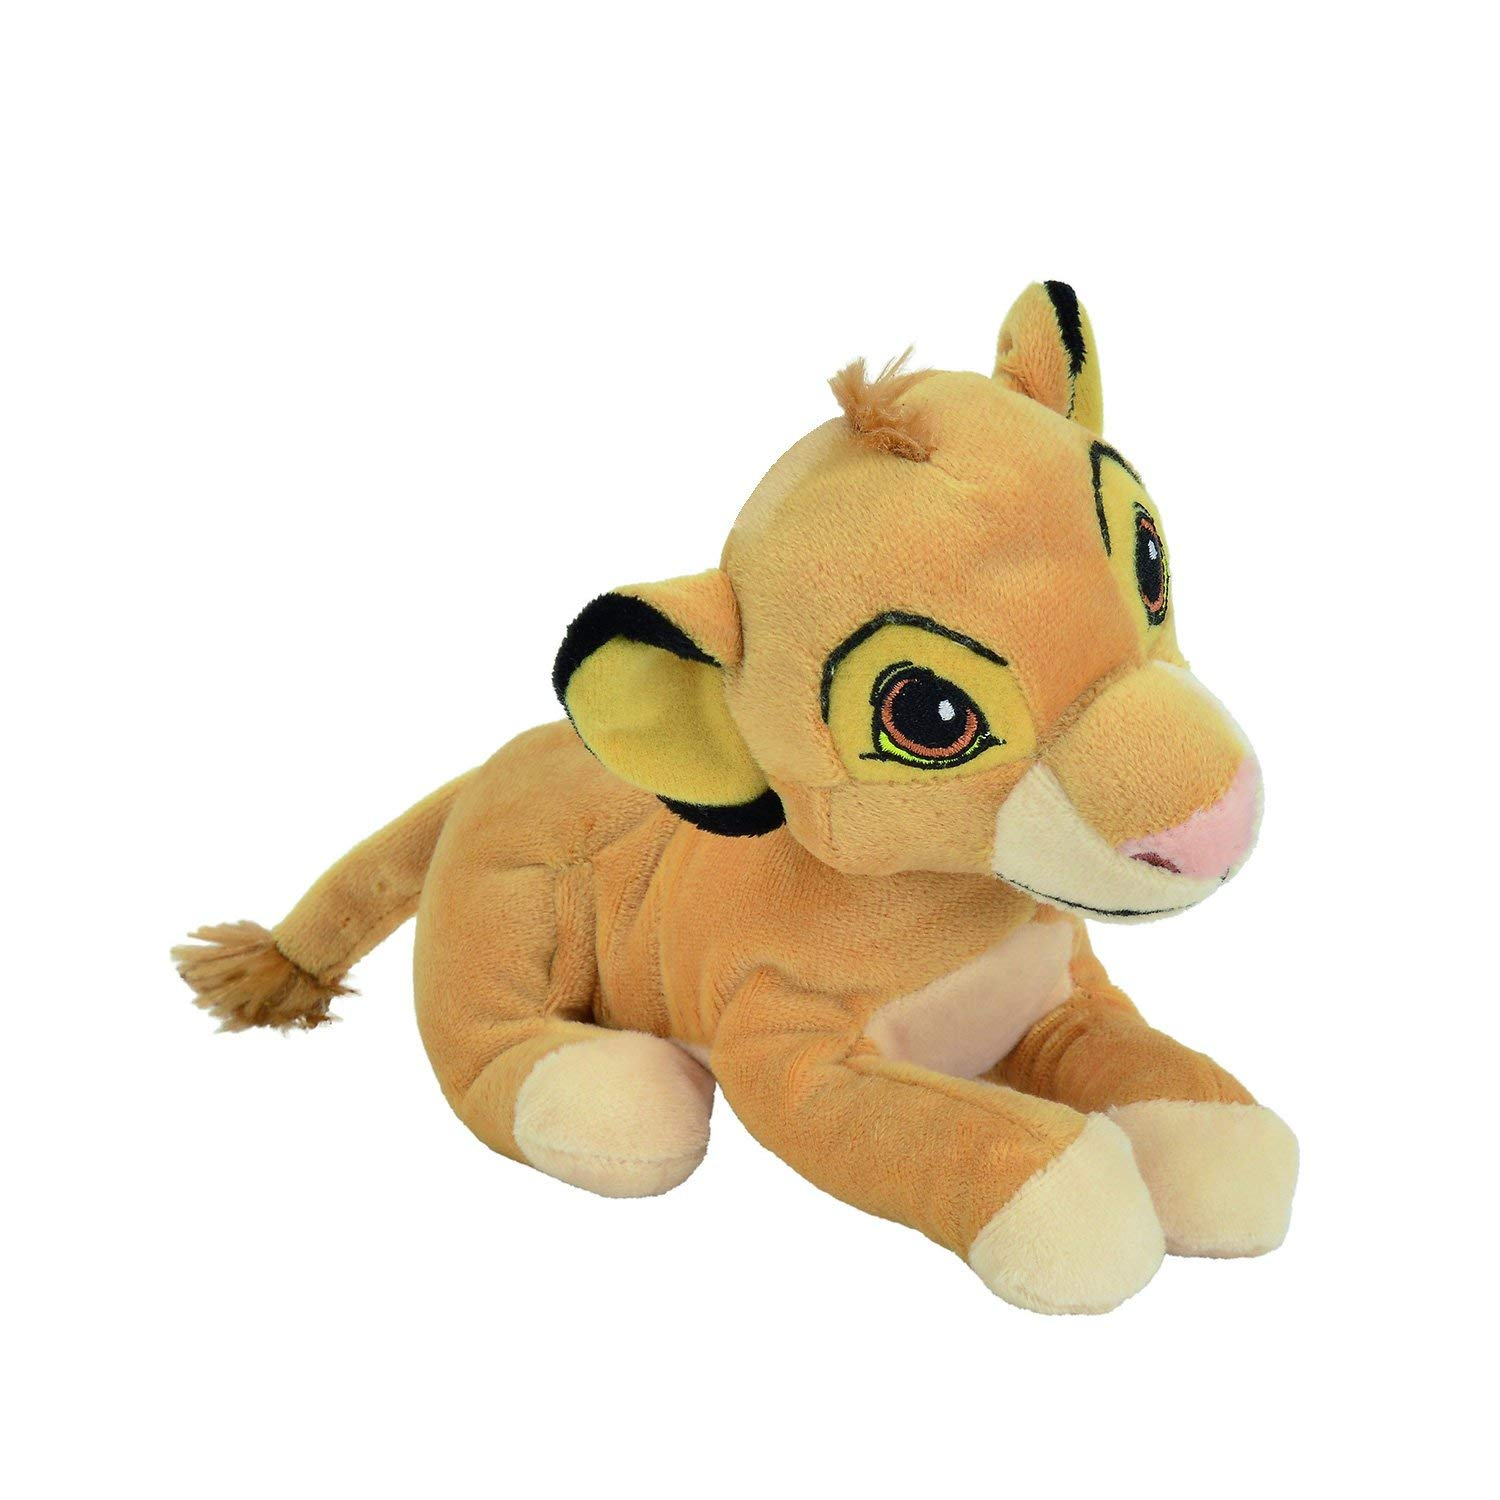 Peluche DISNEY ANIMAL FRIENDS - SIMBA RE LEONE - 18 cm